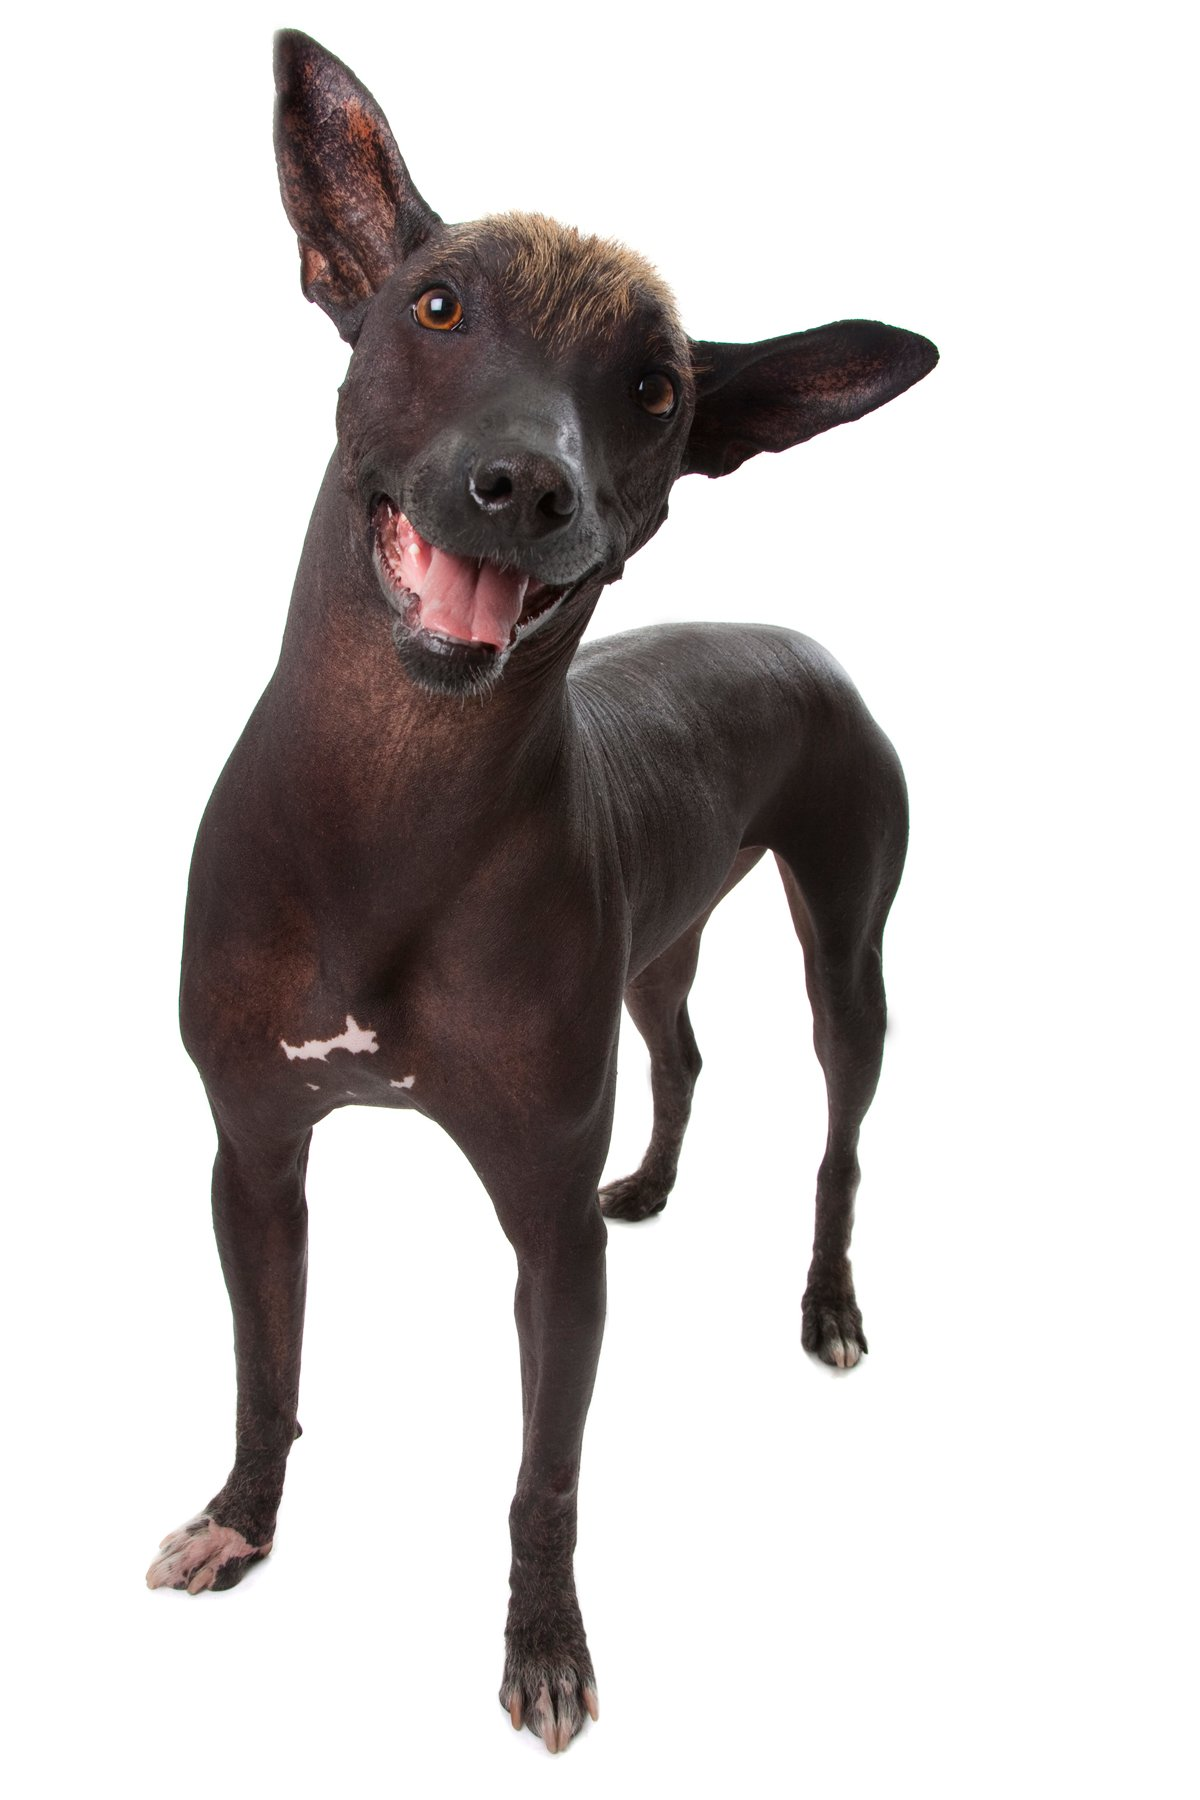 Unusual Breeds: The Xoloitzcuintle